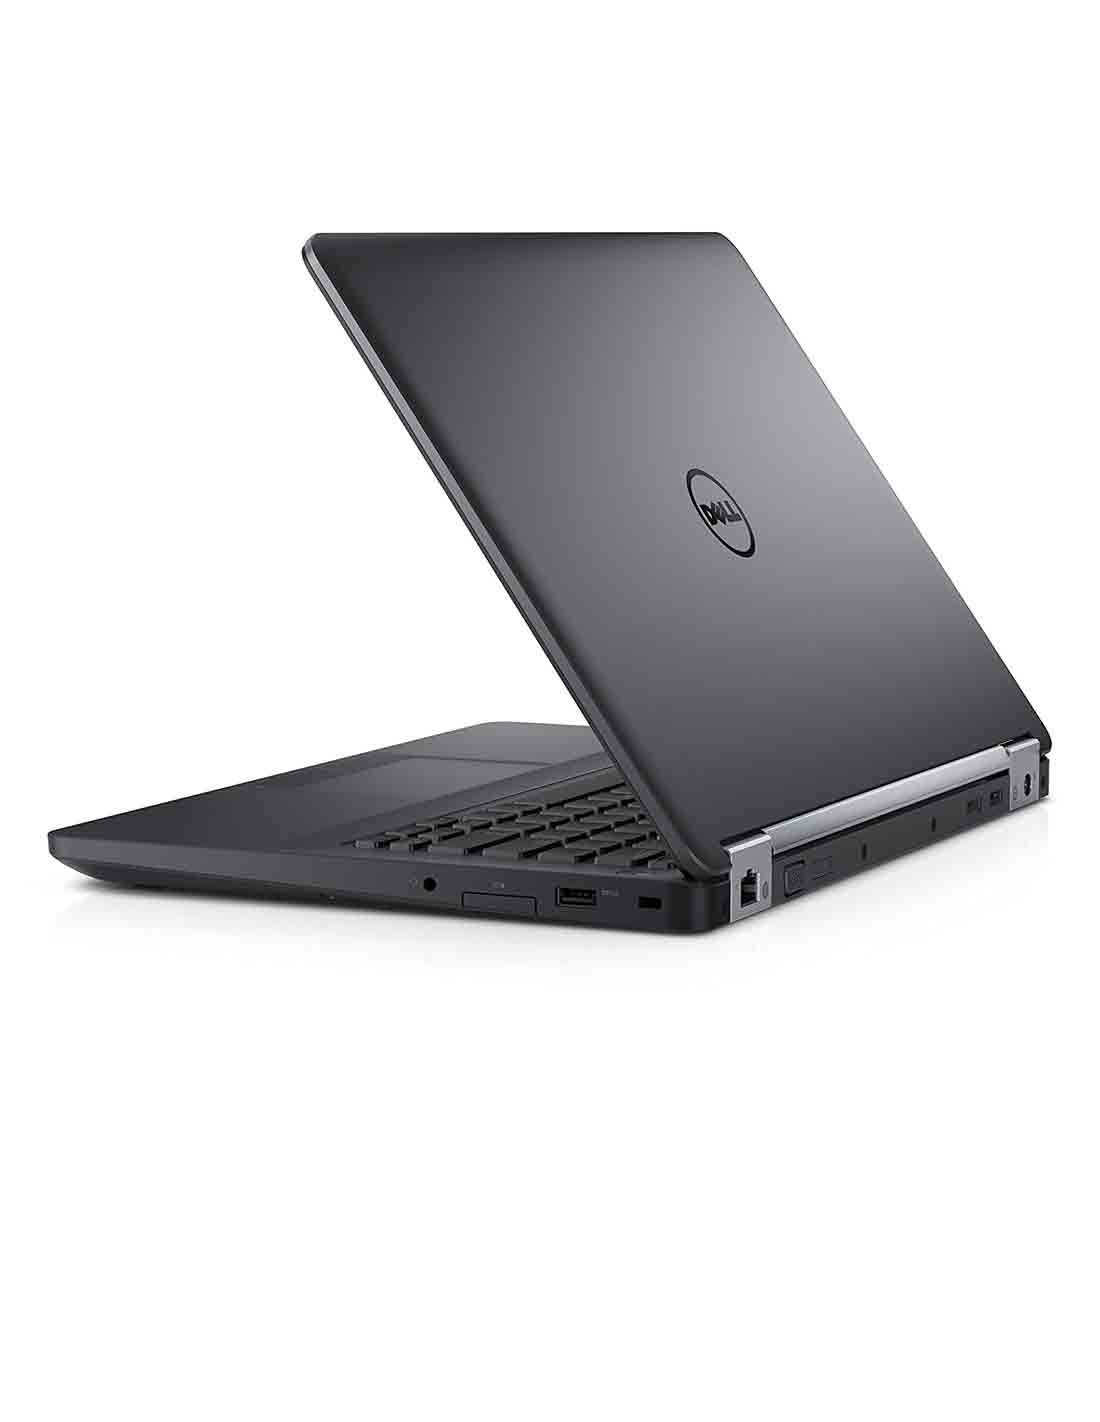 Dell Latitude E5470 Intel Core i7 8GB Memory which is More Secure and Reliable Notebook